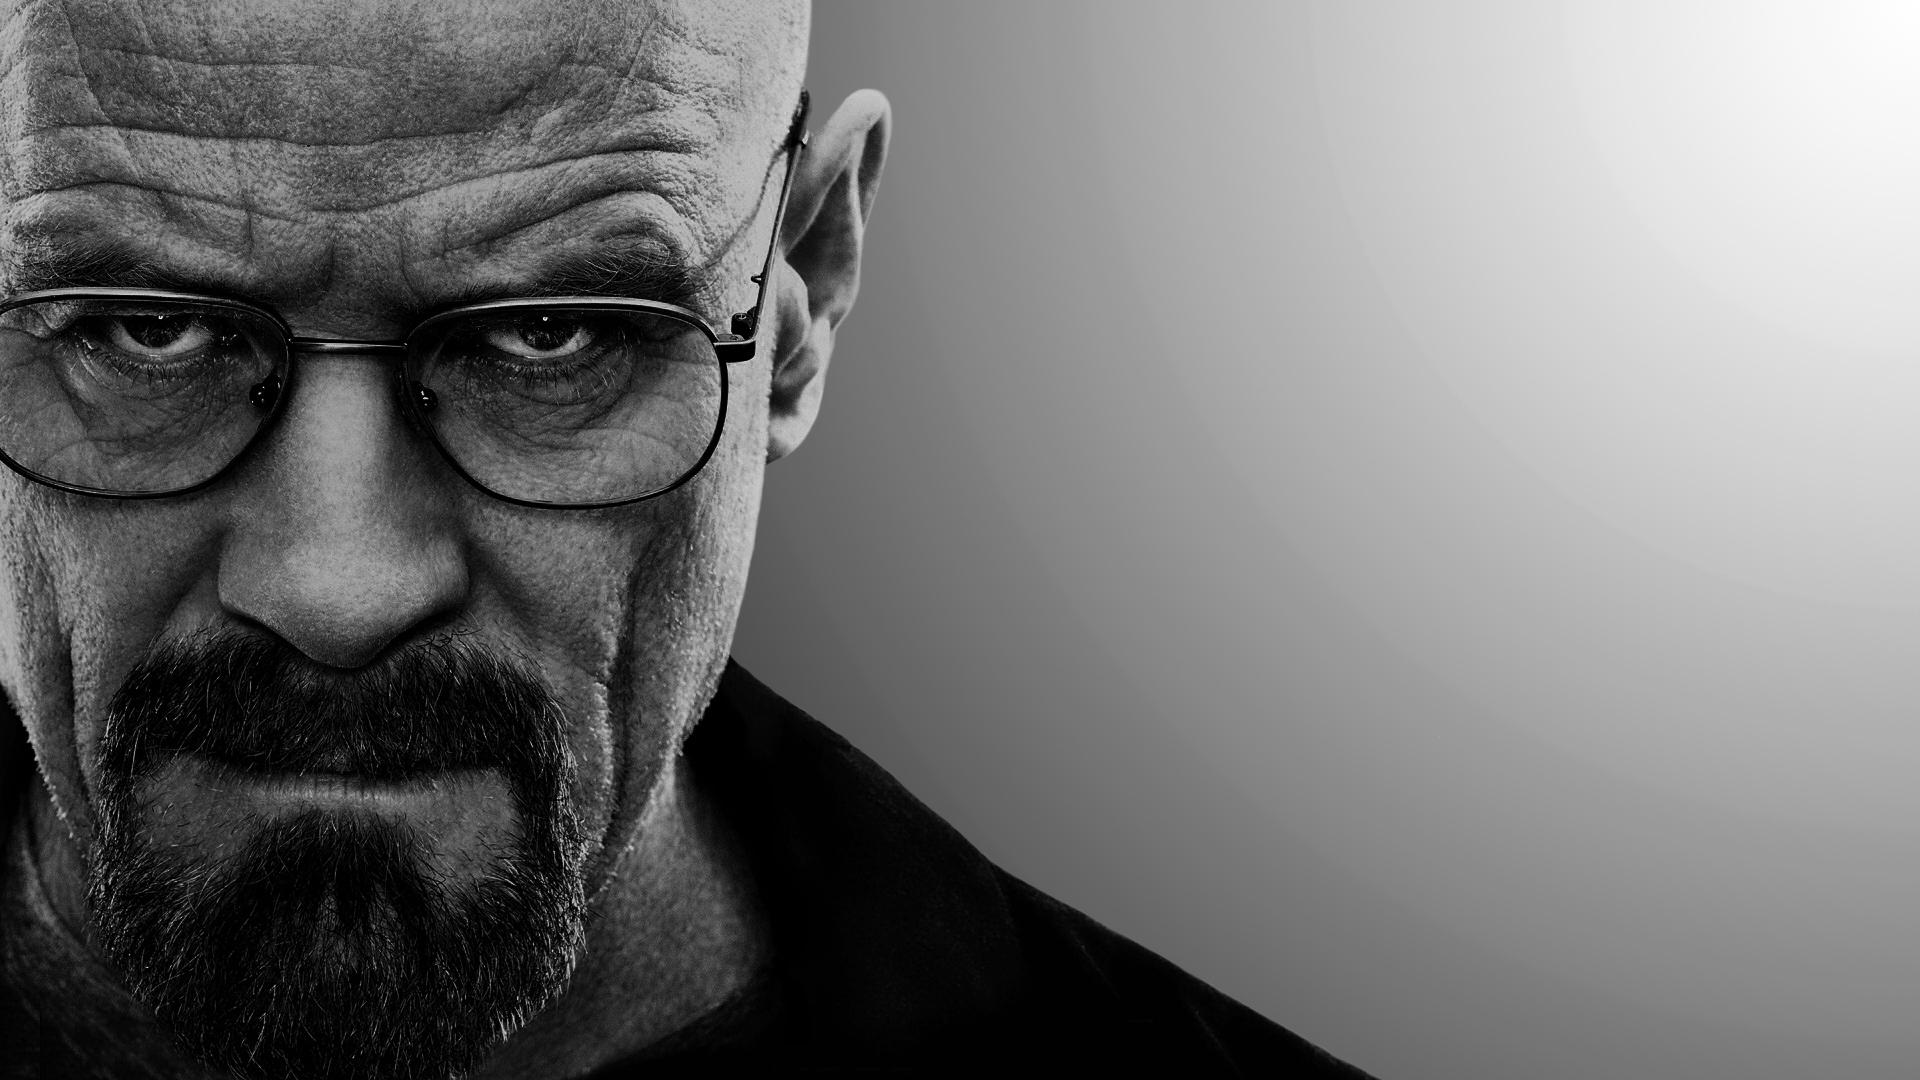 Walter White Wallpapers Top Free Walter White Backgrounds